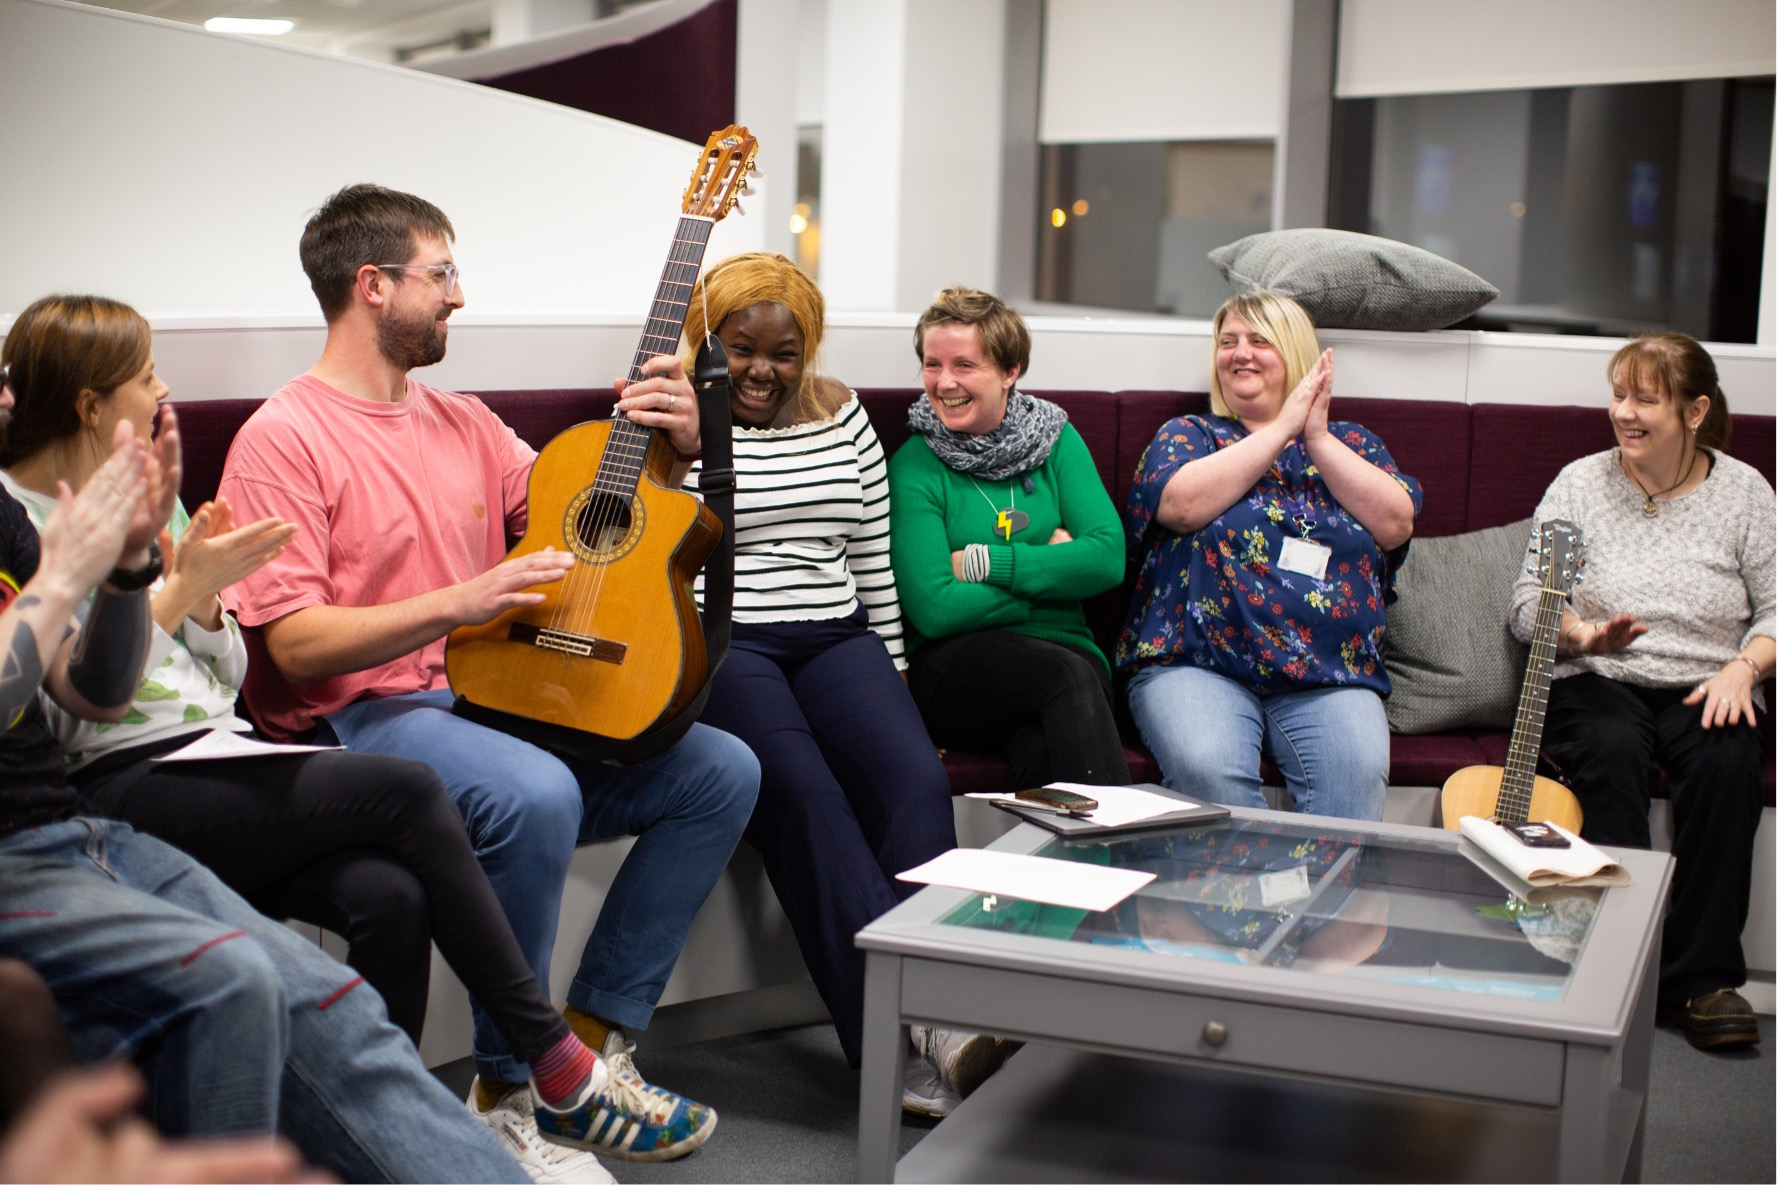 A group of people sit on a sofa clapping - one is holding a guitar - they look excited